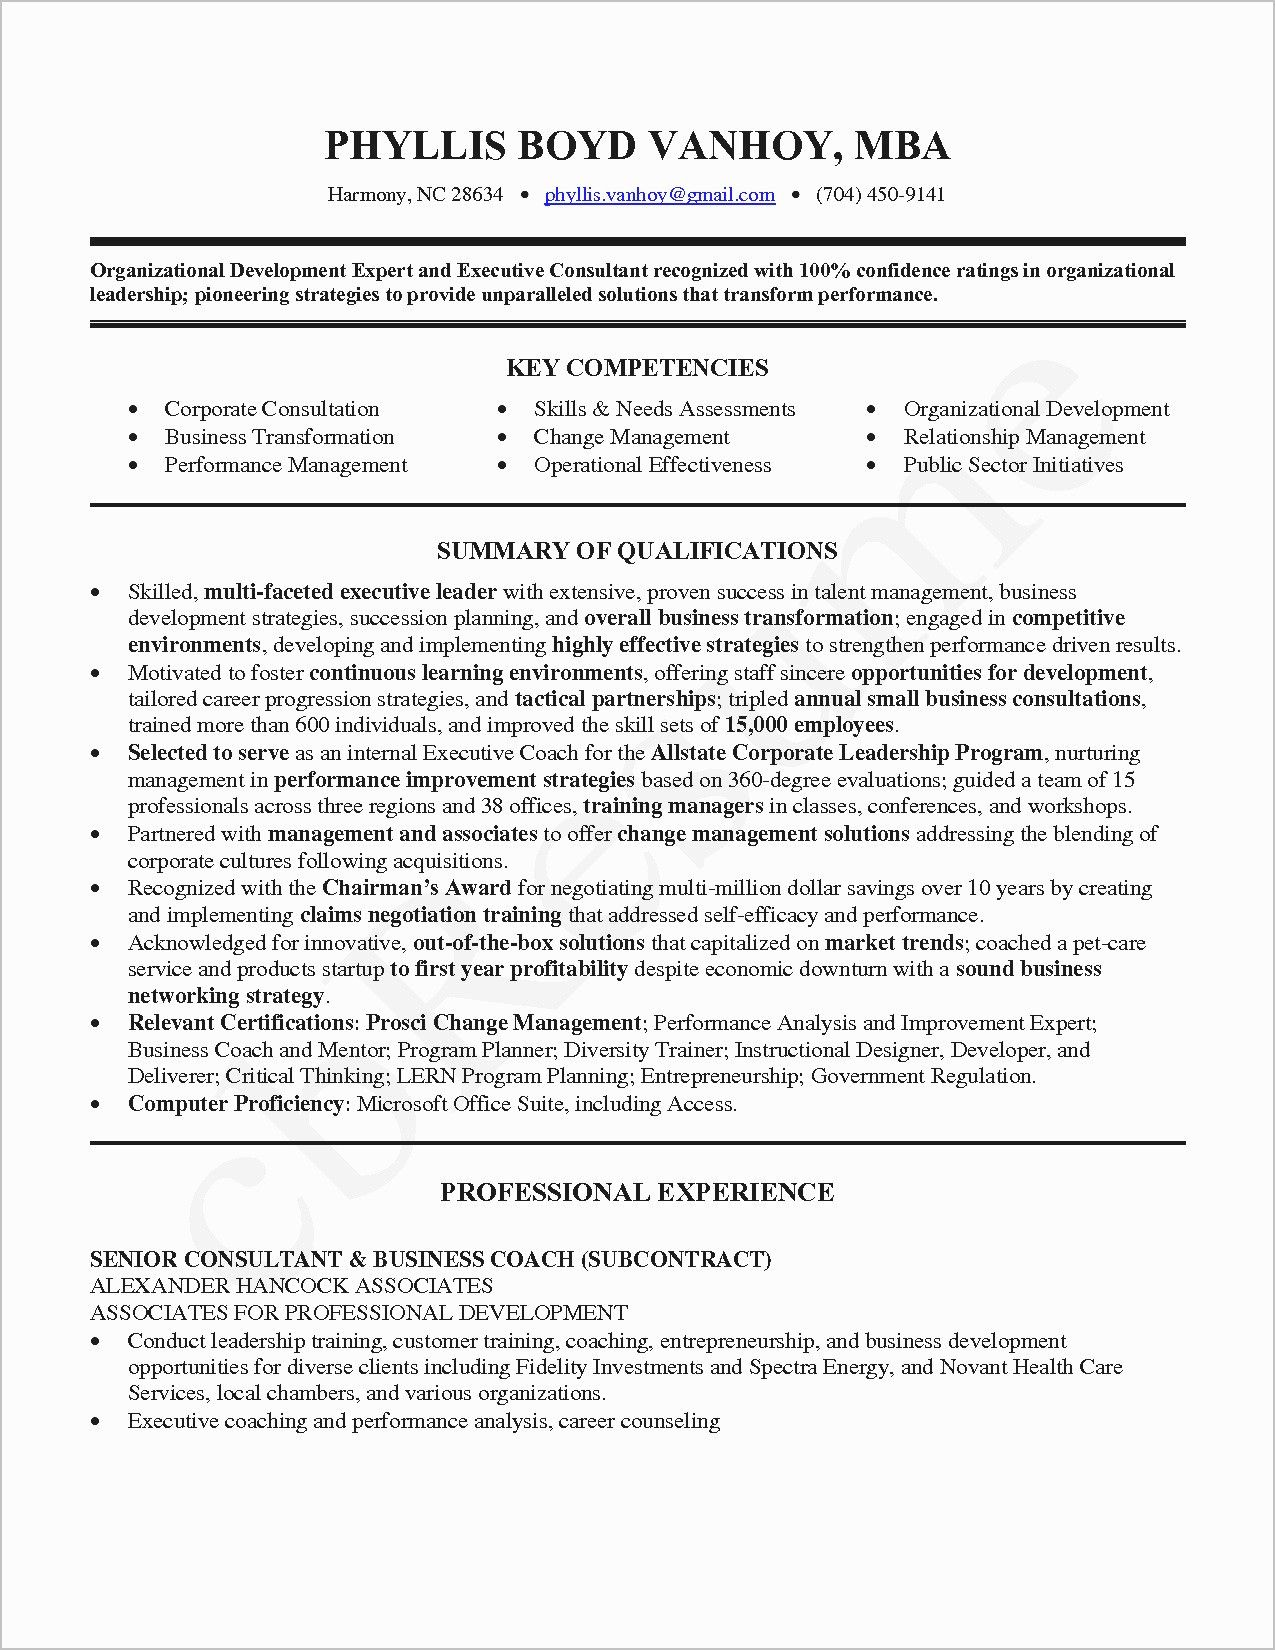 76 cool photos of sample resume for career change to healthcare